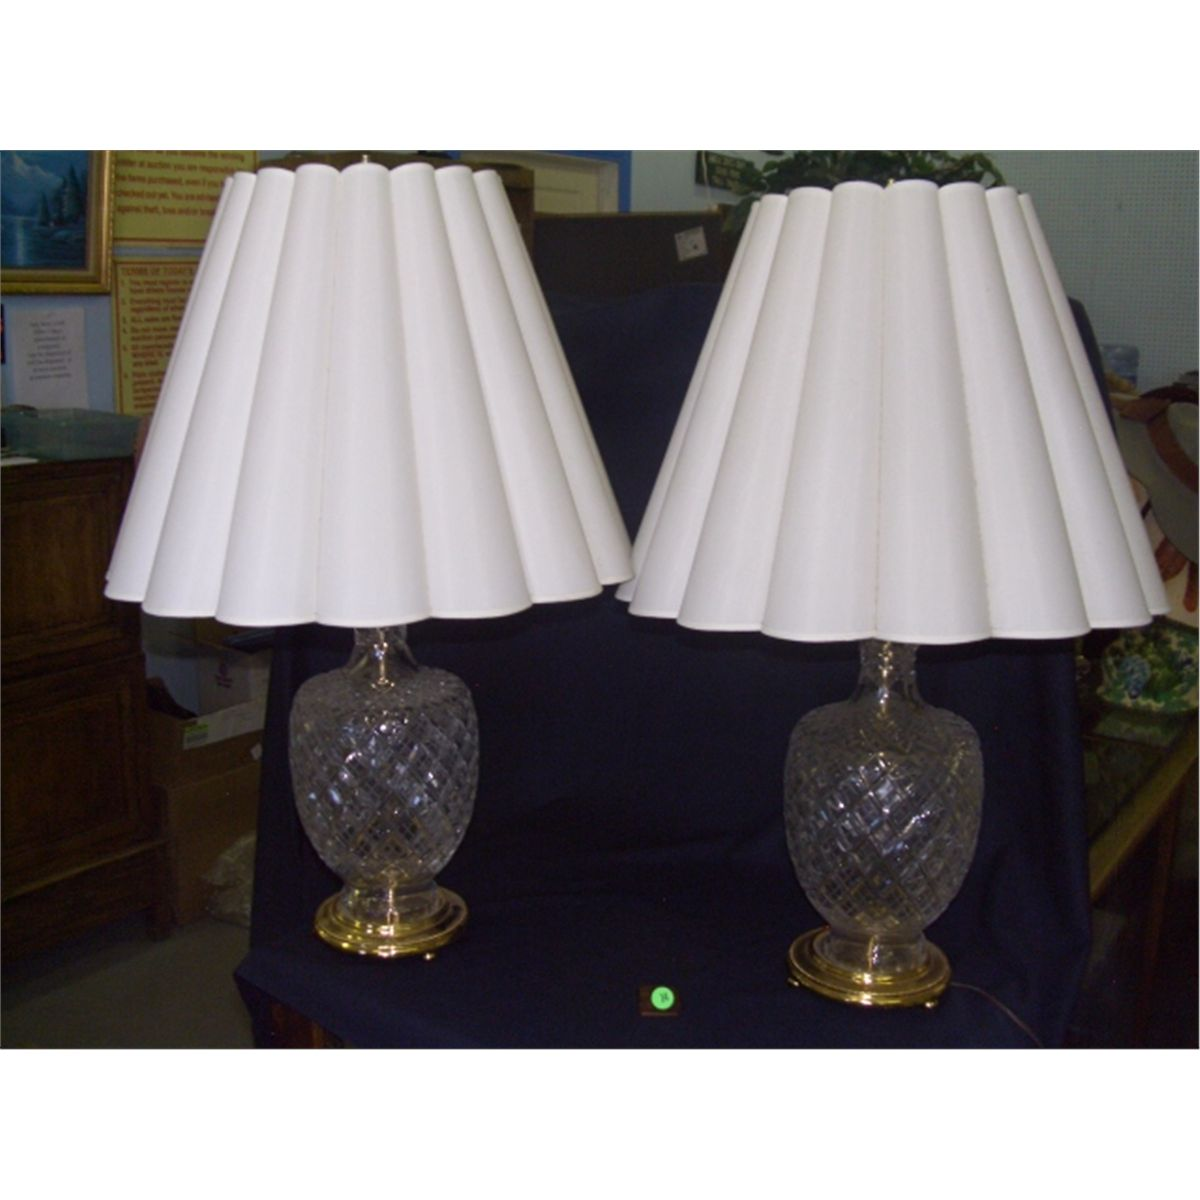 2 piece matching cut crystal glass table lamps waterford no marks 2 piece matching cut crystal glass table lamps waterford no marks found 29 aloadofball Image collections